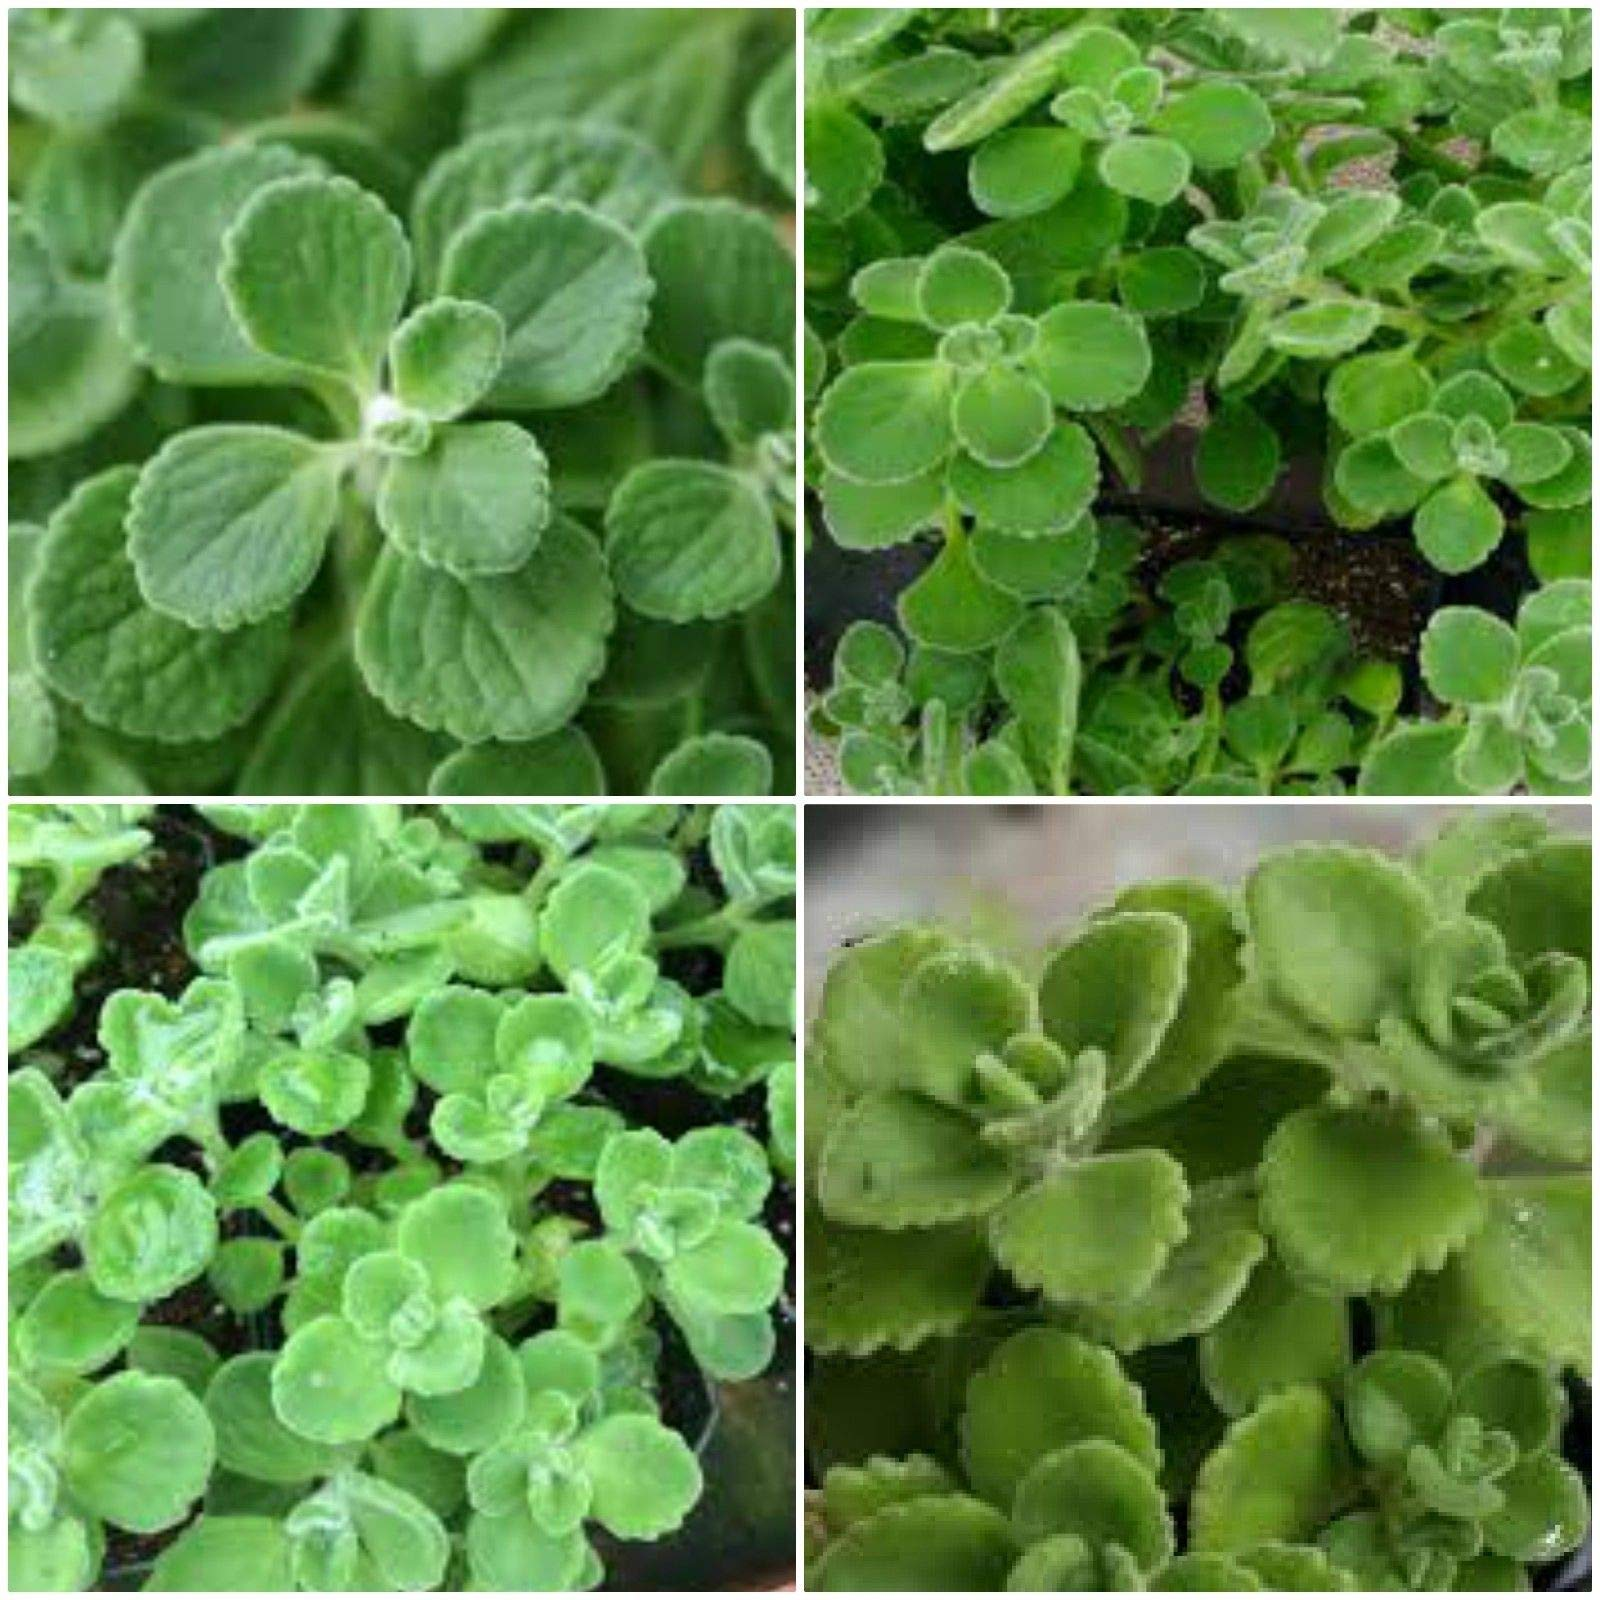 5-7'' Tall Vicks Plants Plectranthus Tomentosa Scented Herb Easy Care Live Plant Get 2